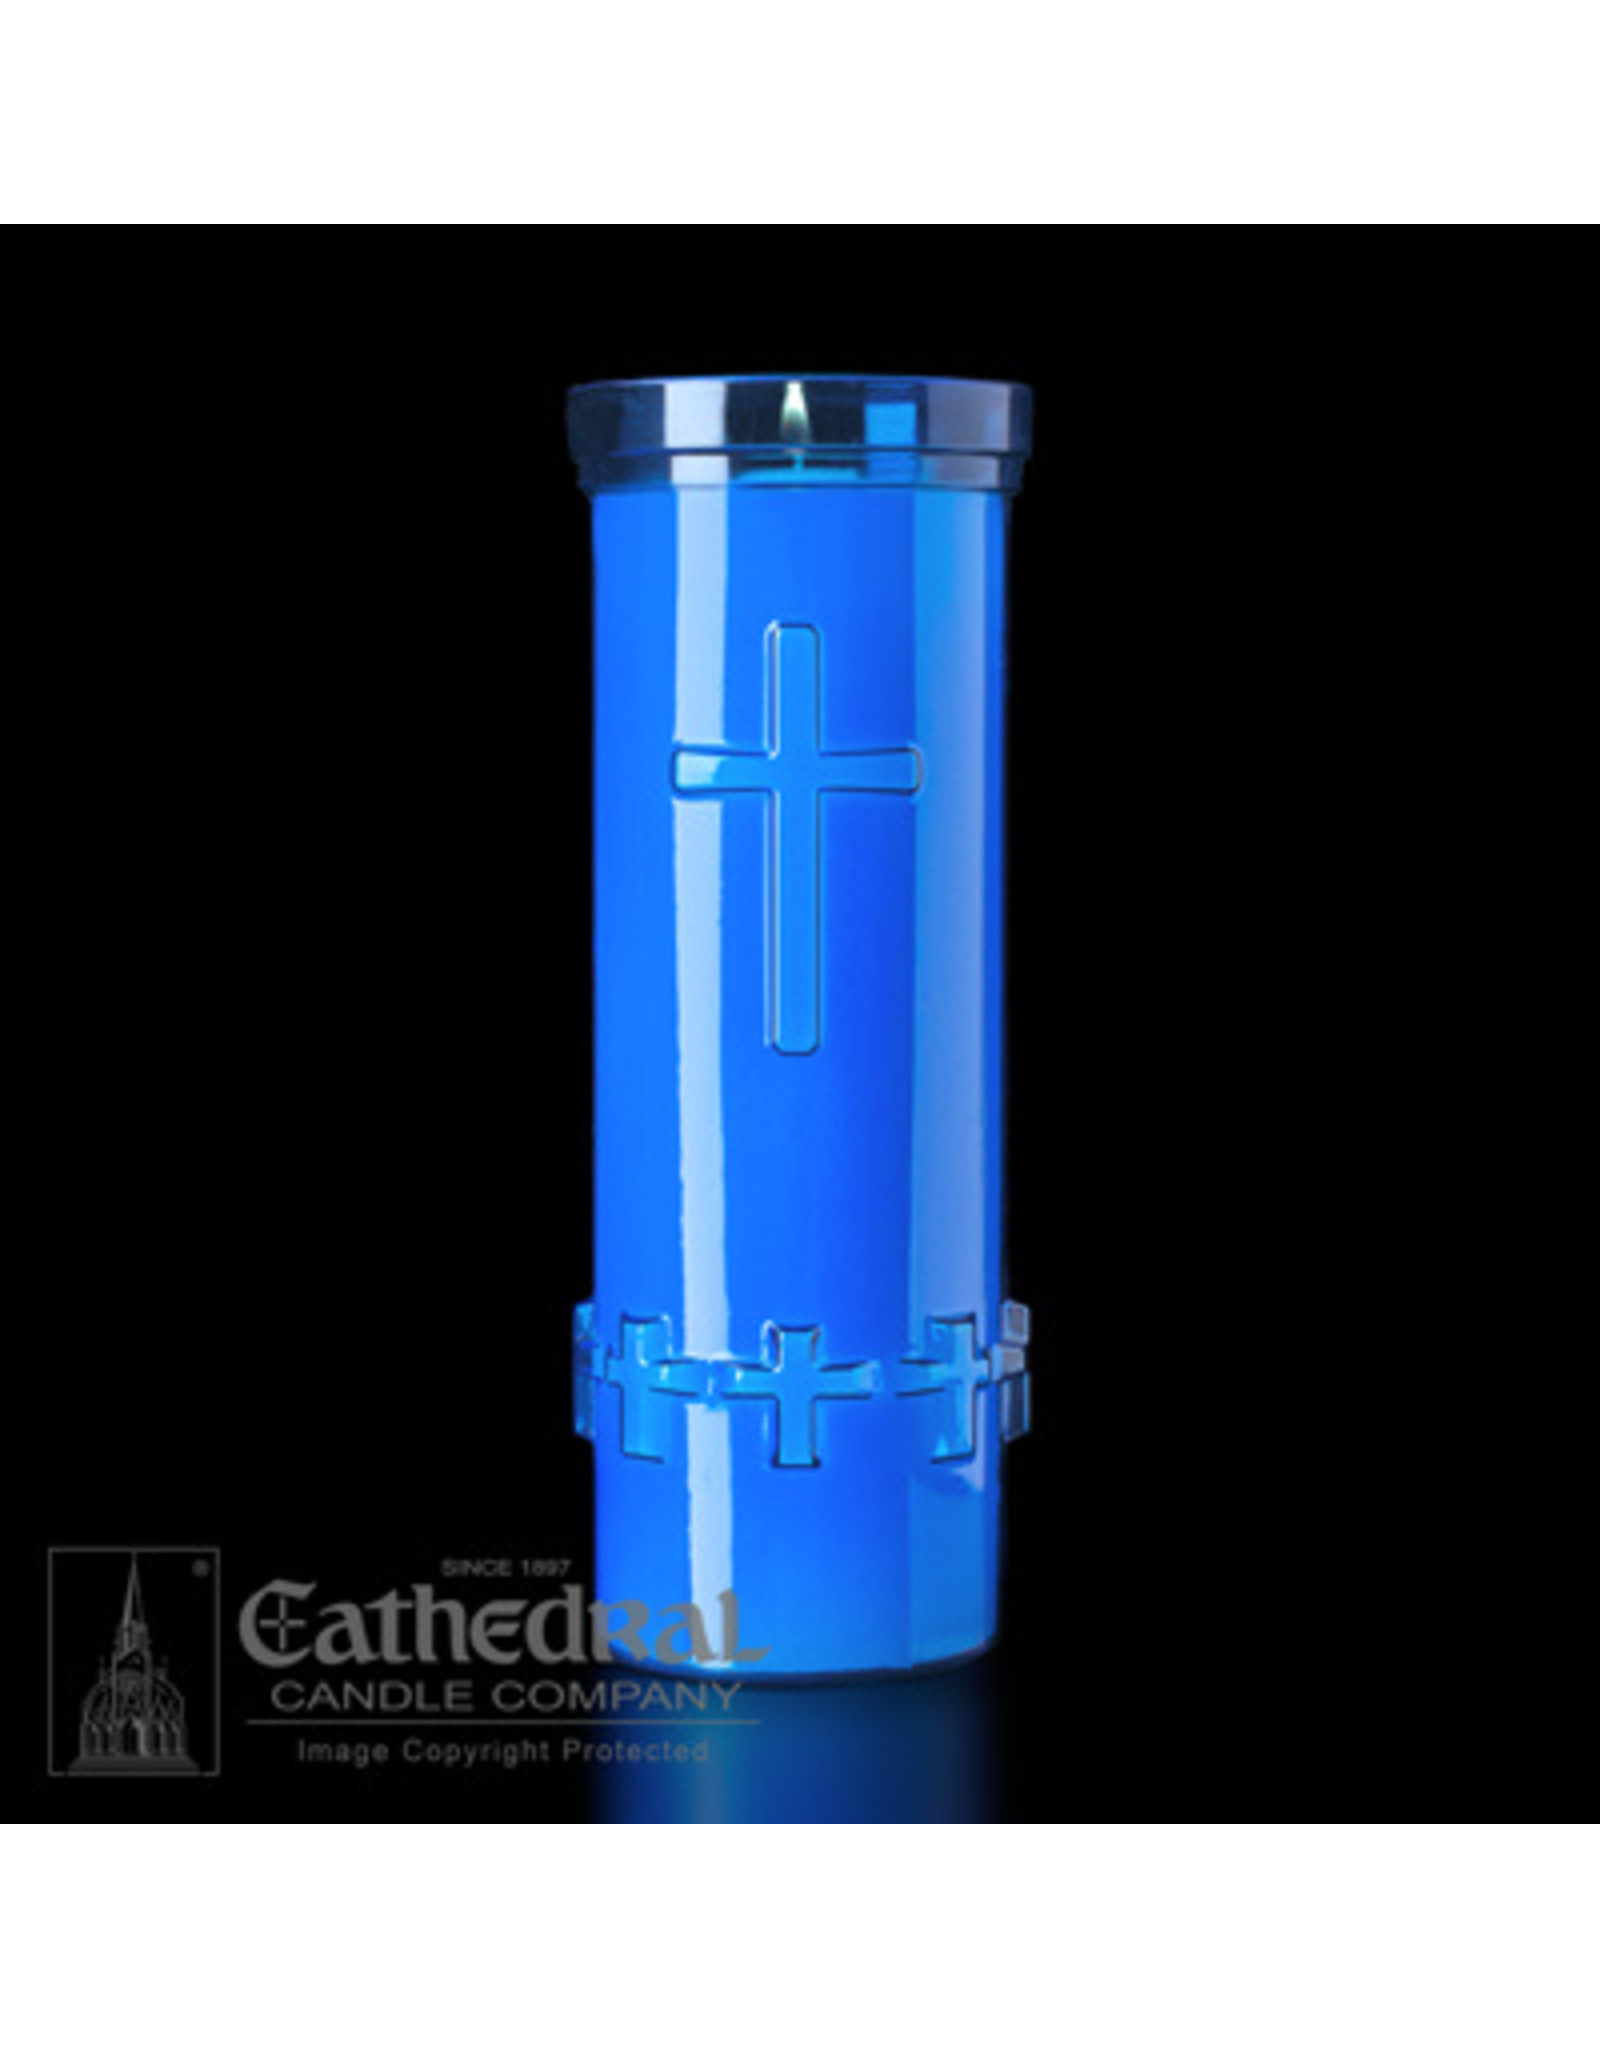 CNDL DEVOTIONA-LITE 6-DAY BLUE PLASTIC (24)